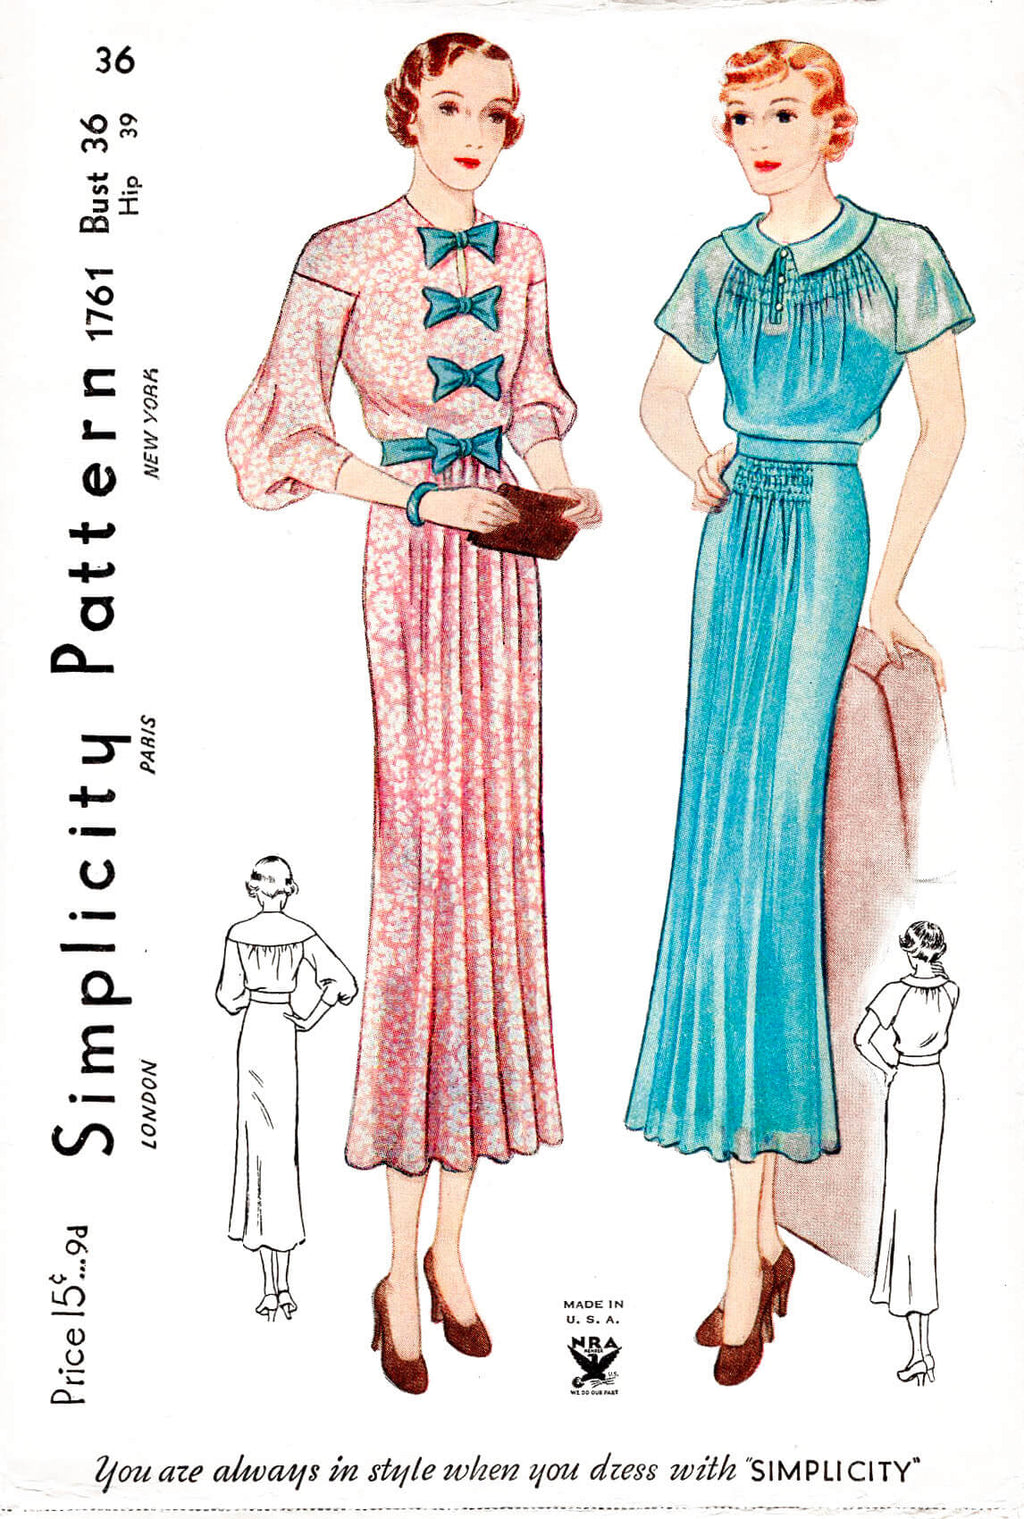 1930s 30s Simplicity 1761 drop shoulder or raglan sleeves shirring and bow detail dress vintage sewing pattern reproduction